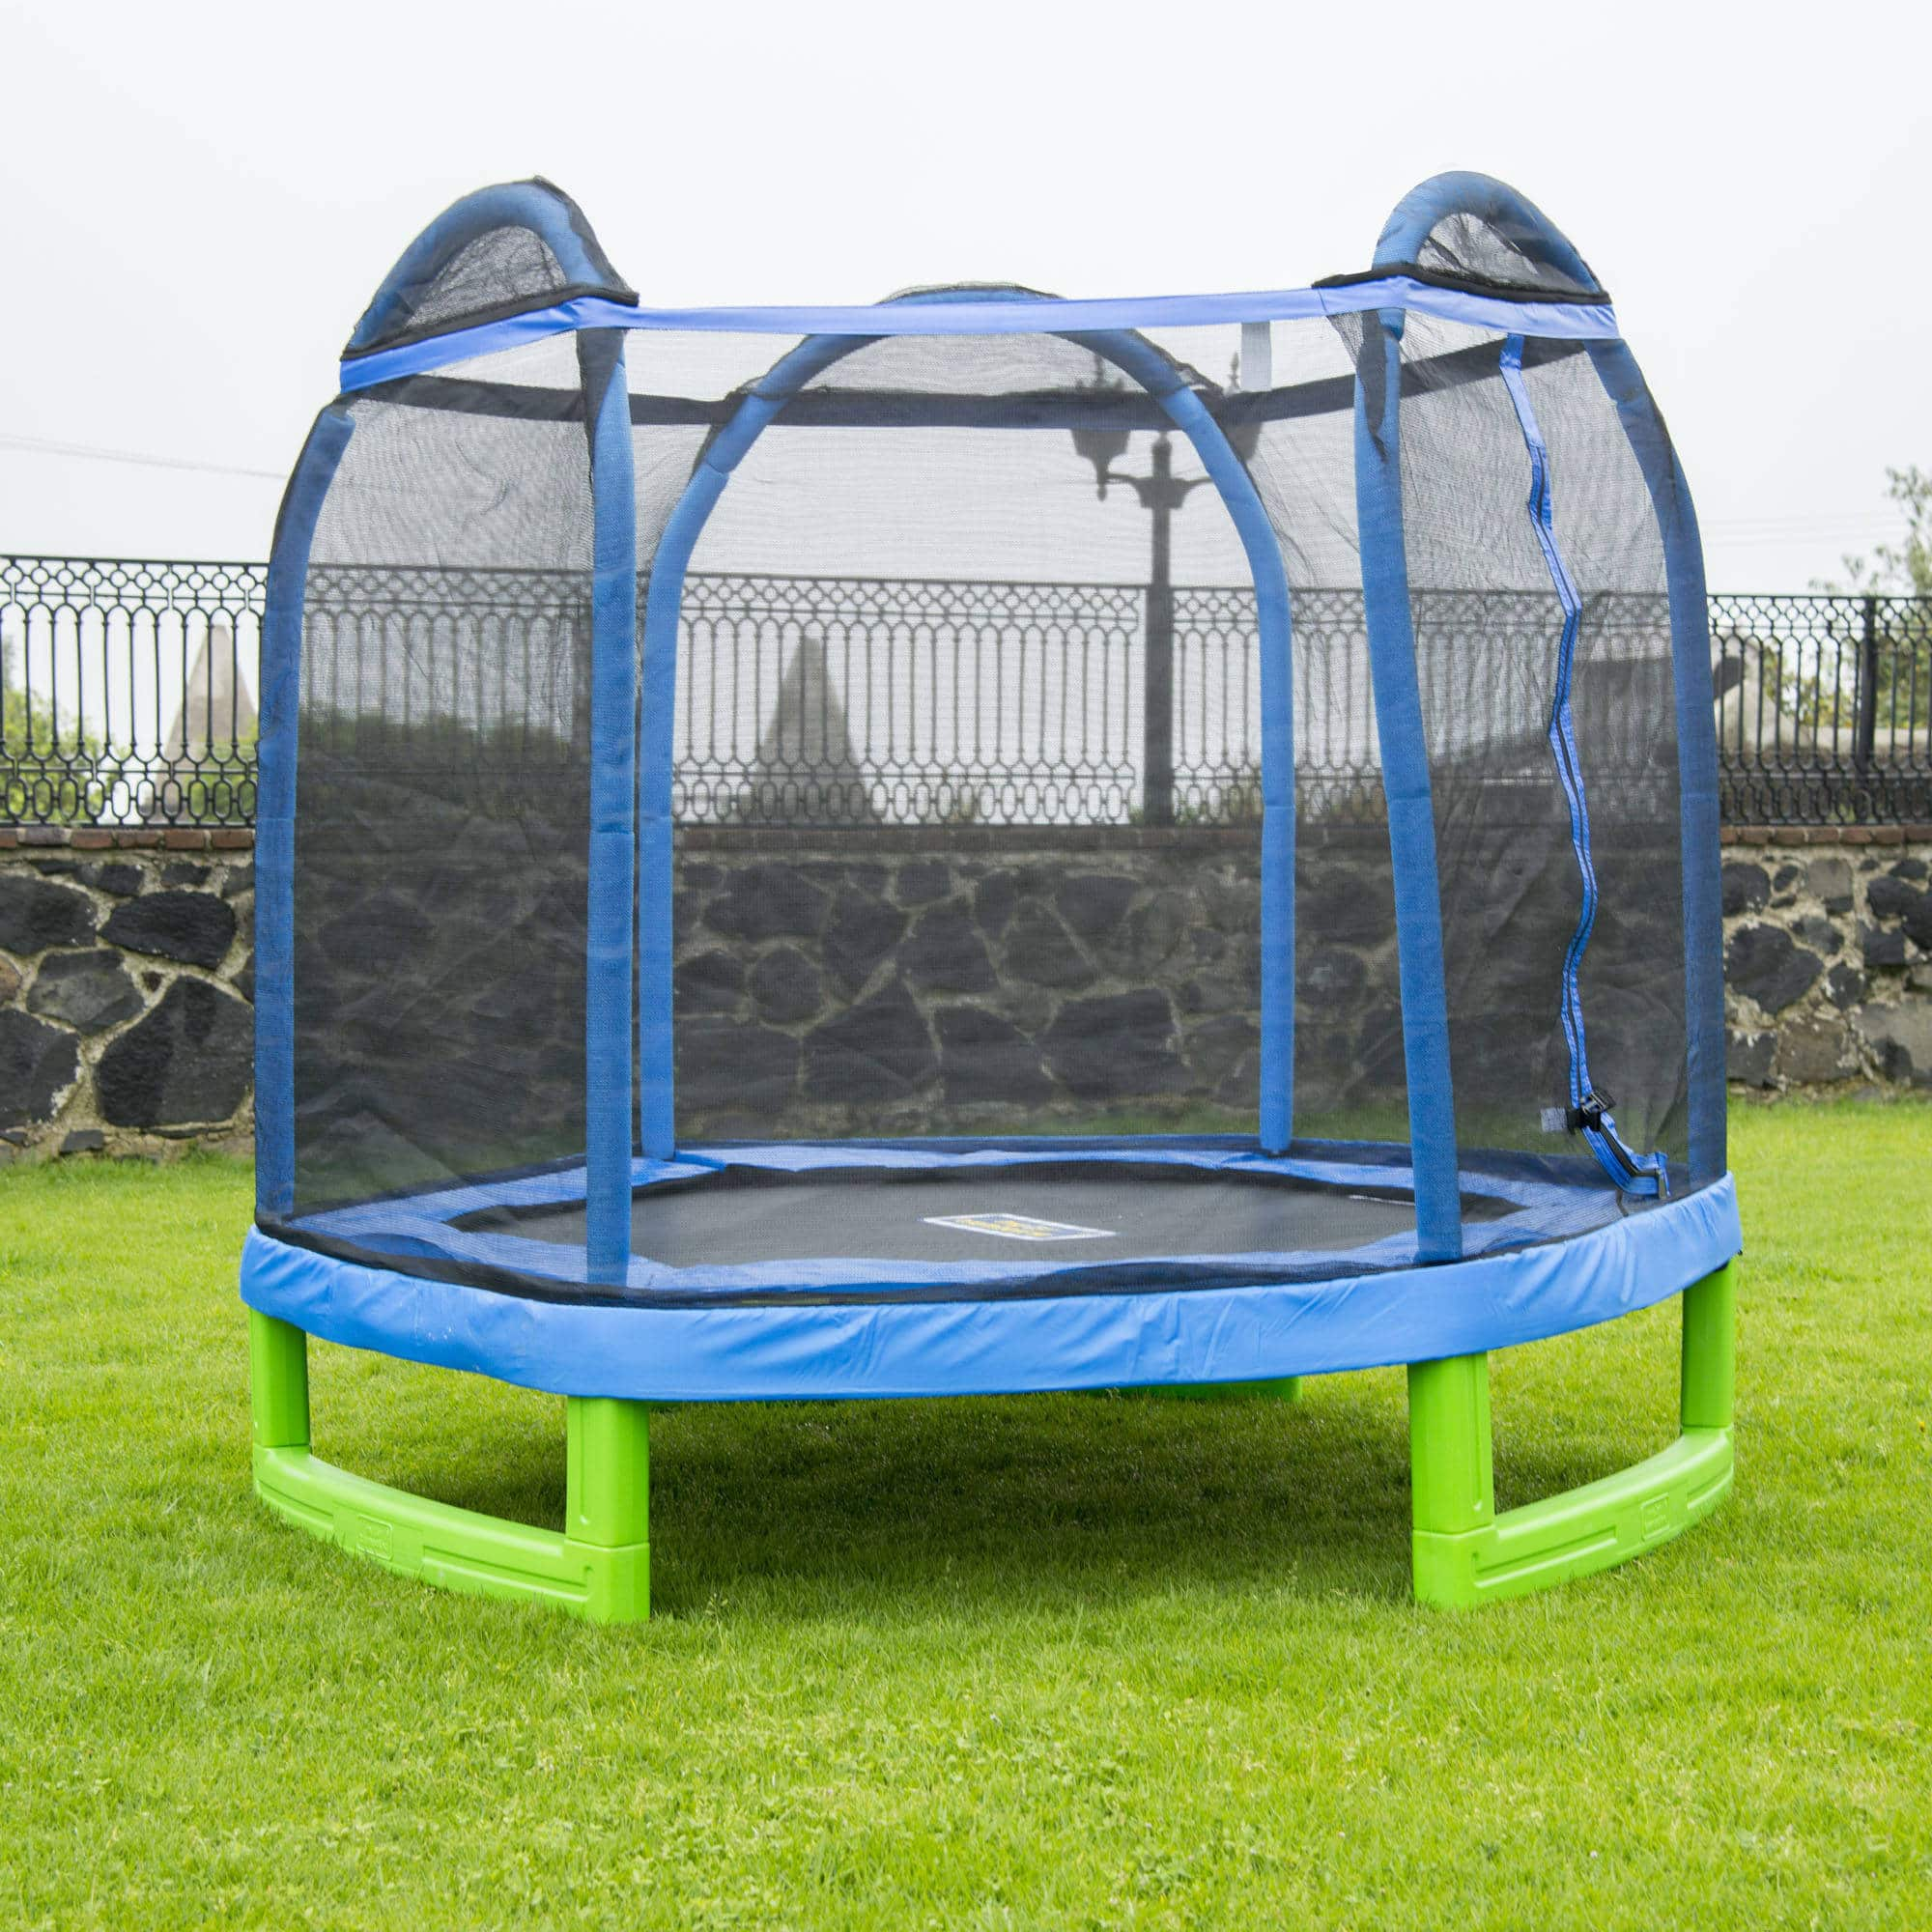 Bounce Pro 7-Foot My First Trampoline Hexagon (Ages 3-10) for Kids, Blue/Green $129.98 + FS